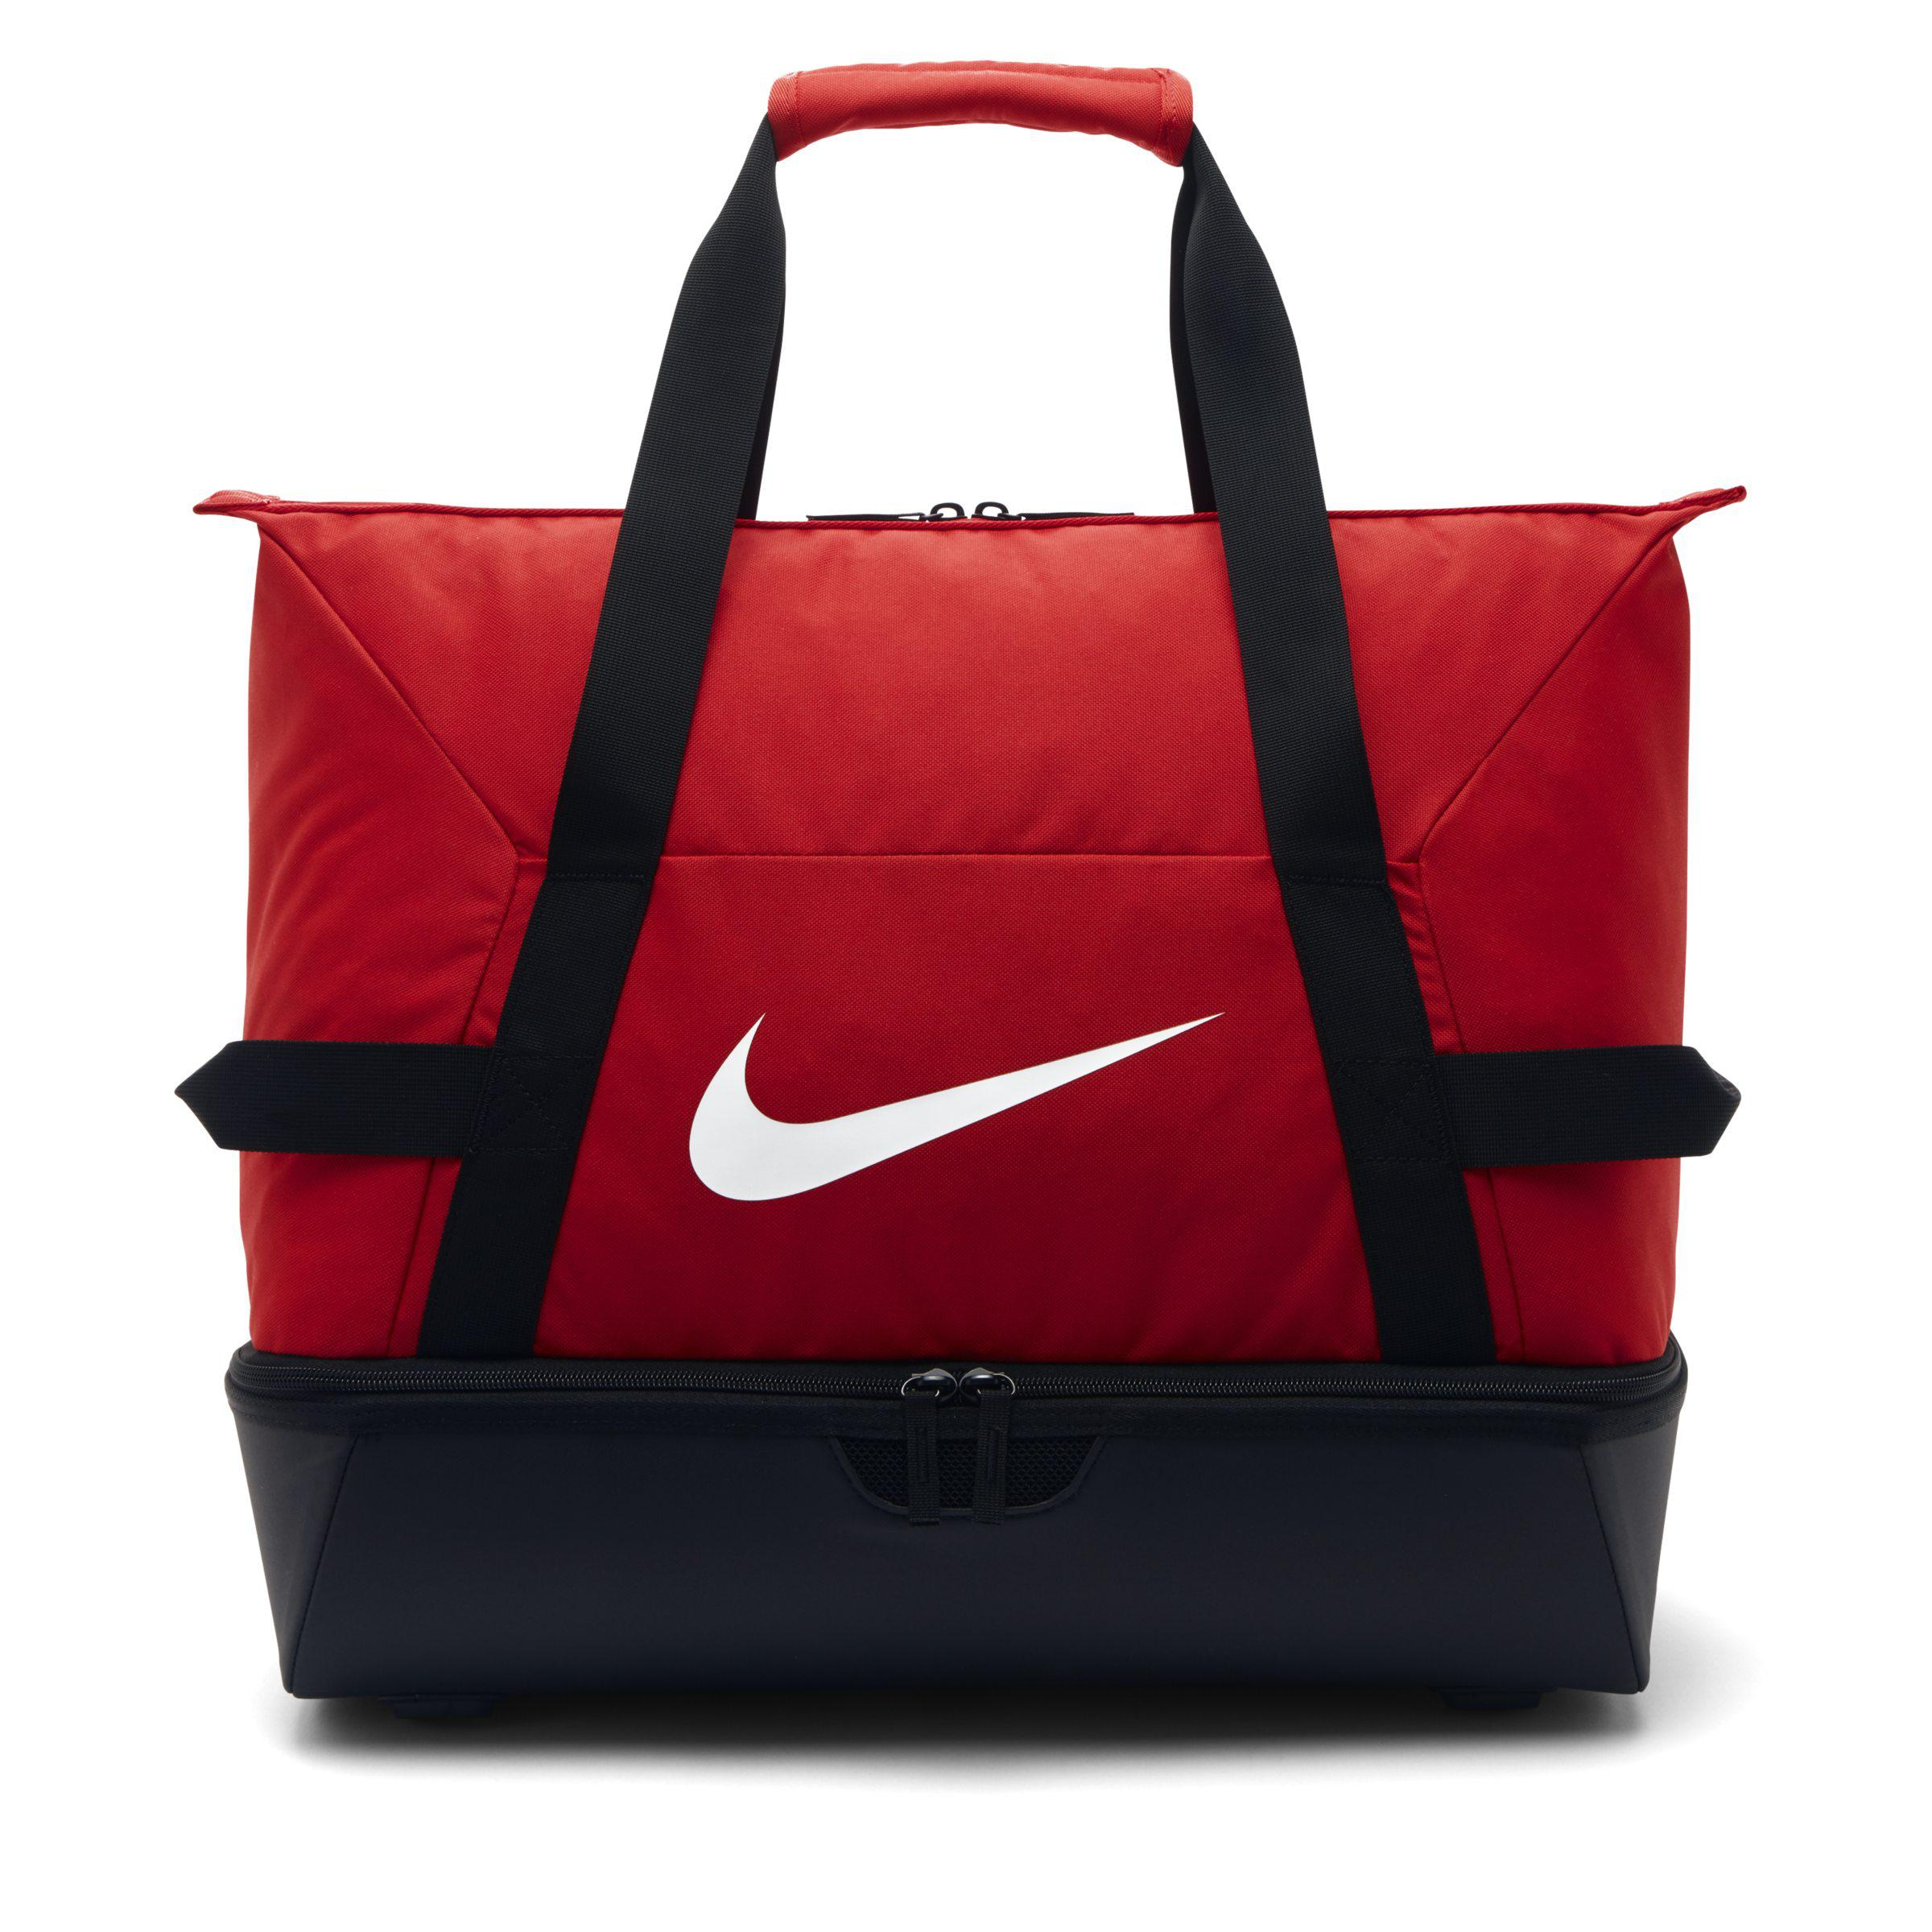 a66613c72a0 Nike Academy Team Hardcase (large) Football Duffel Bag in Red - Save ...